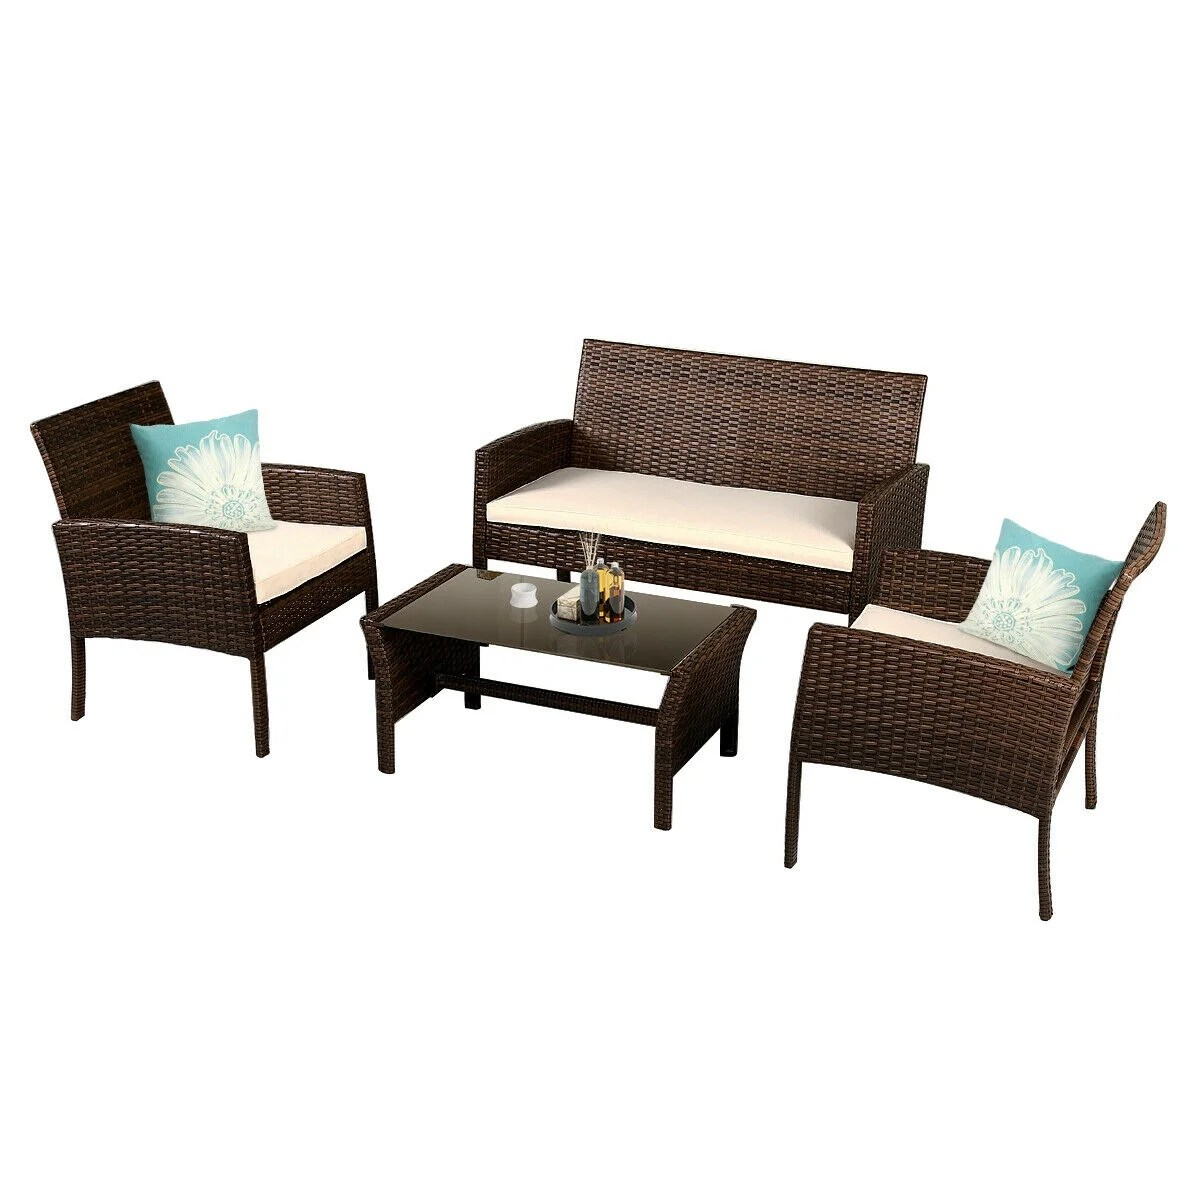 Rattan Sofa Costway 4 Pieces Patio Furniture Wicker Rattan Sofa Set Garden Coffee Table